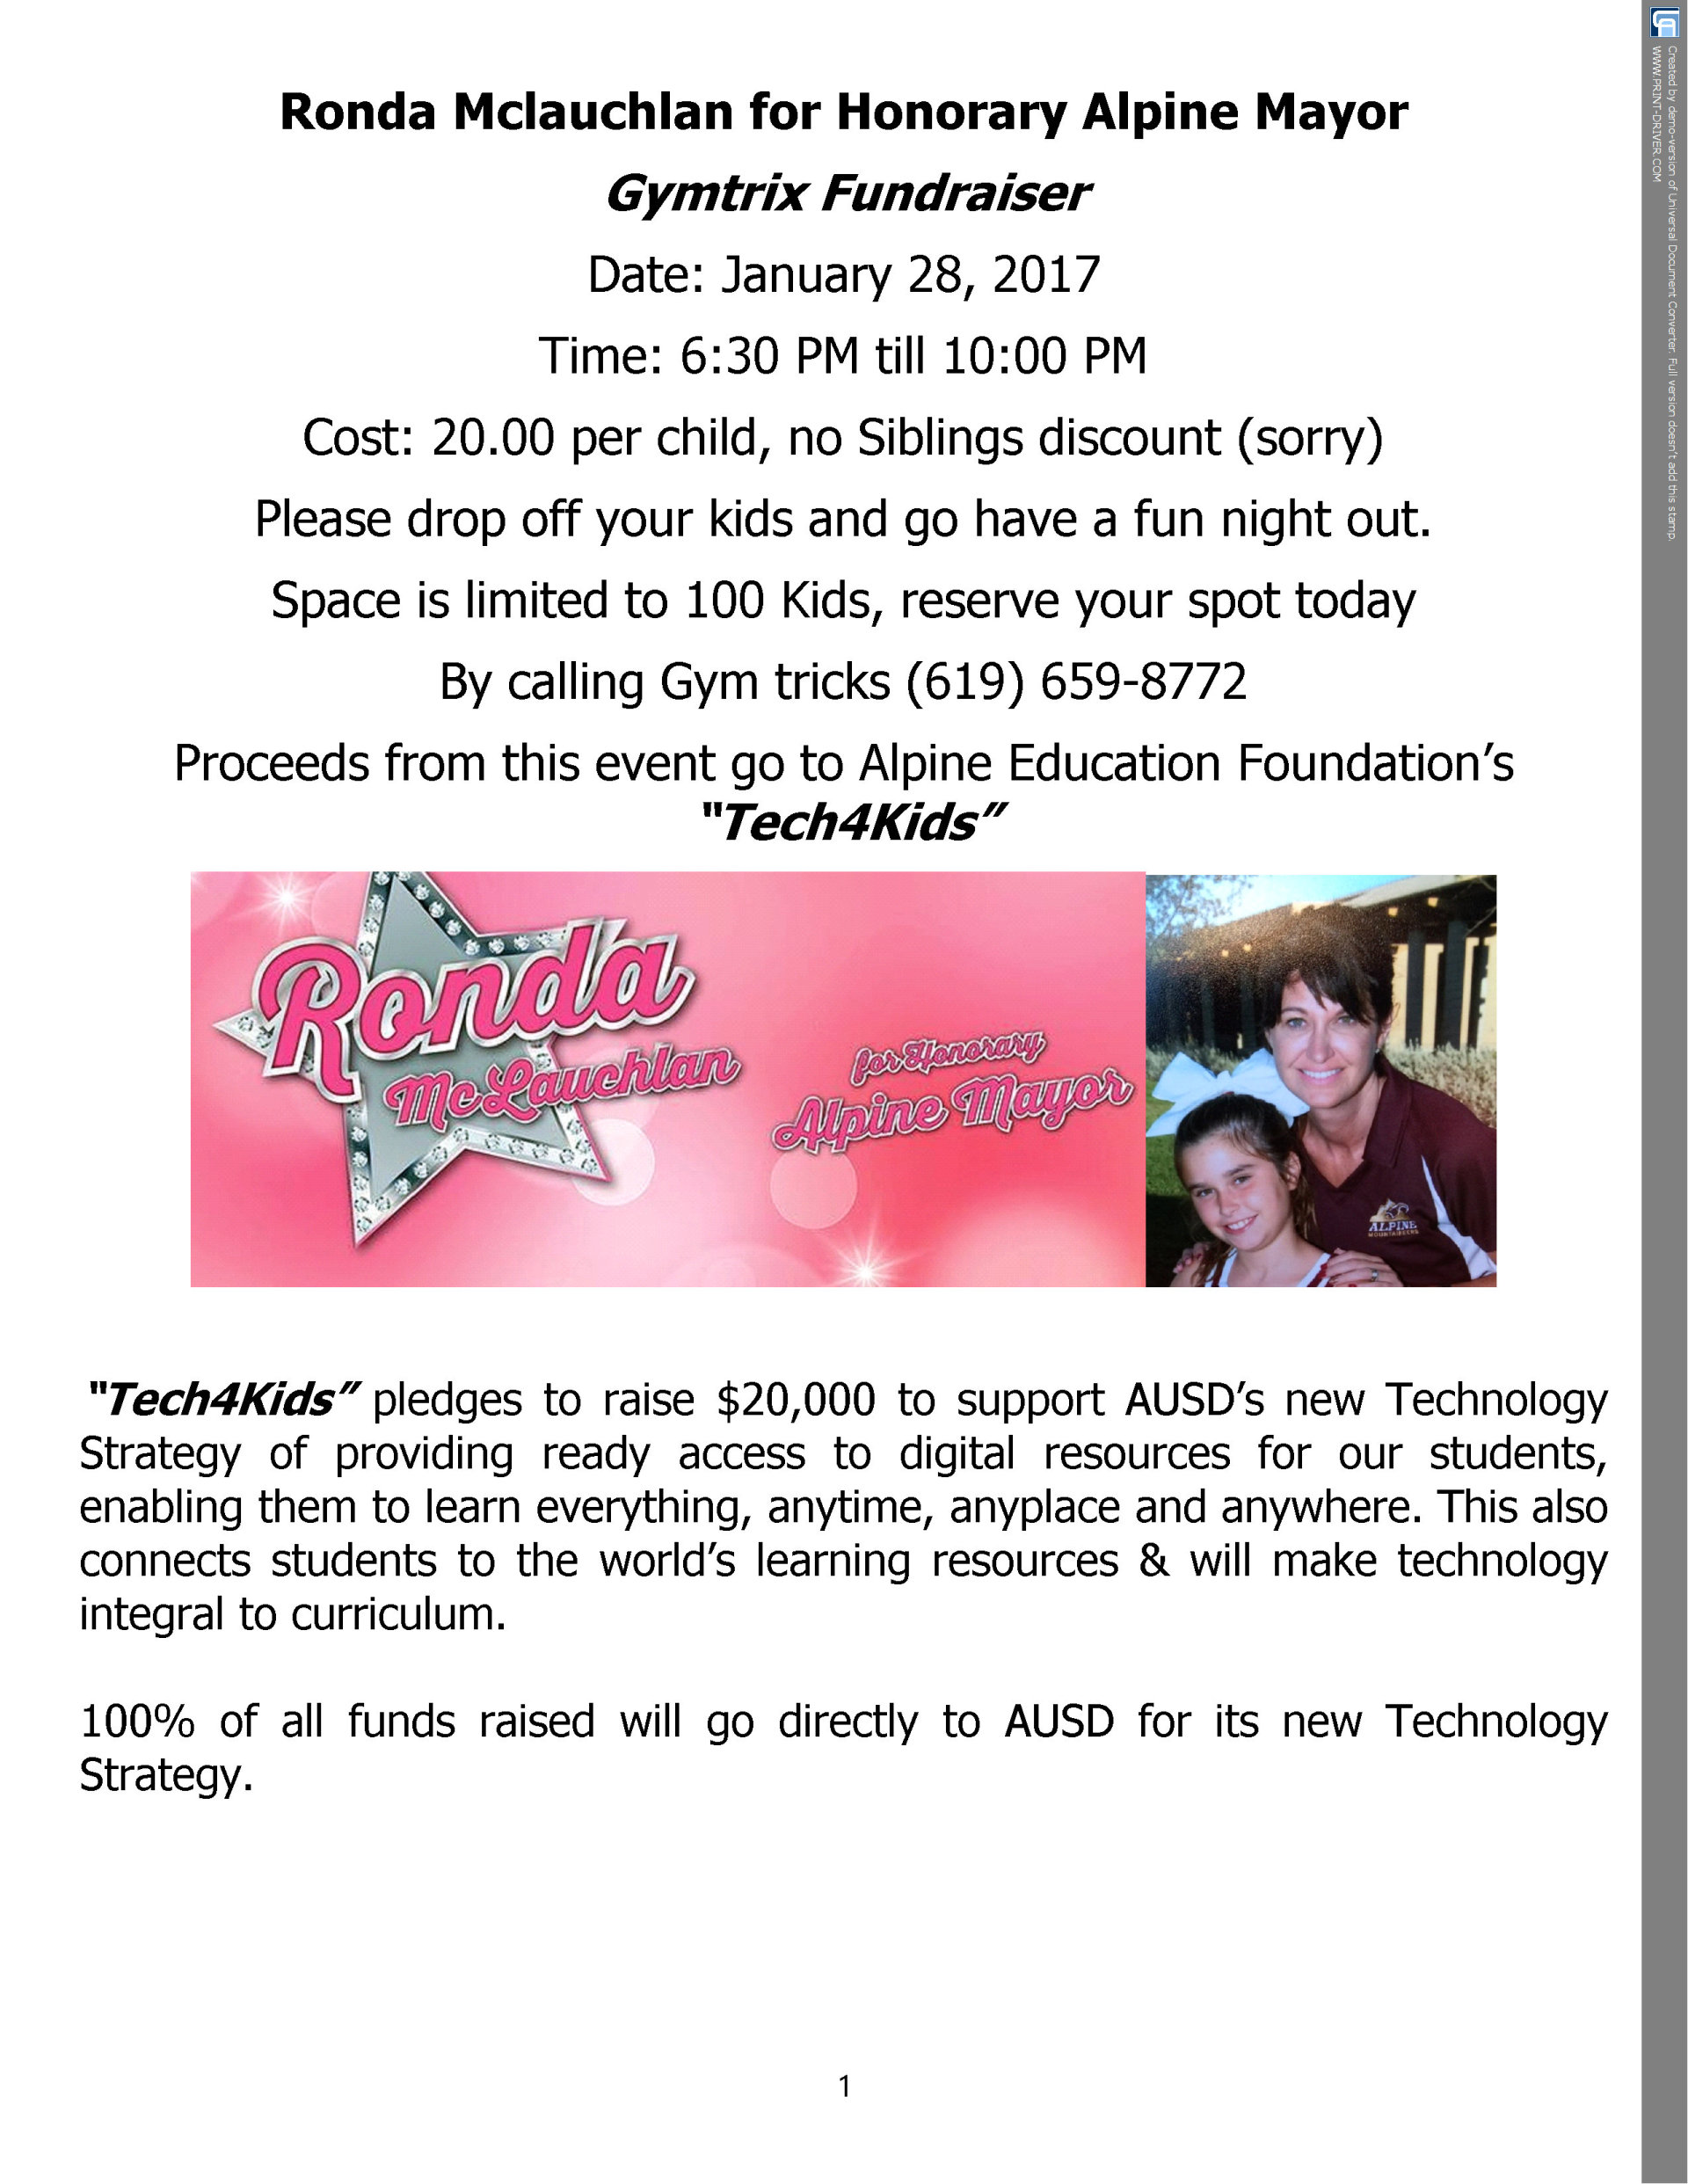 RMcLaughlin-Fundraiser-Event-Notice-2013-01-w1920.jpg